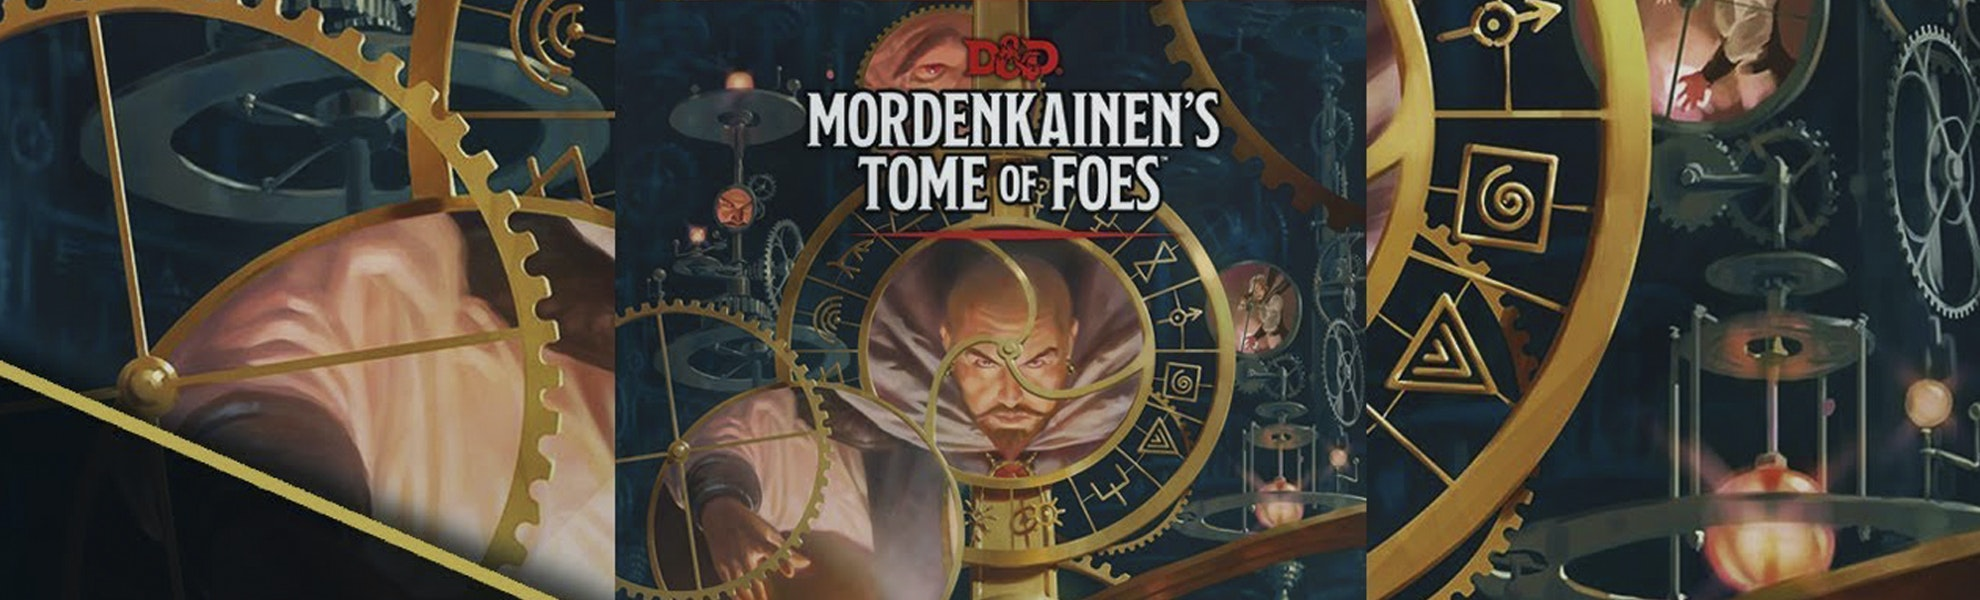 Mordenkainen's Tome of Foes (Regular Edition)